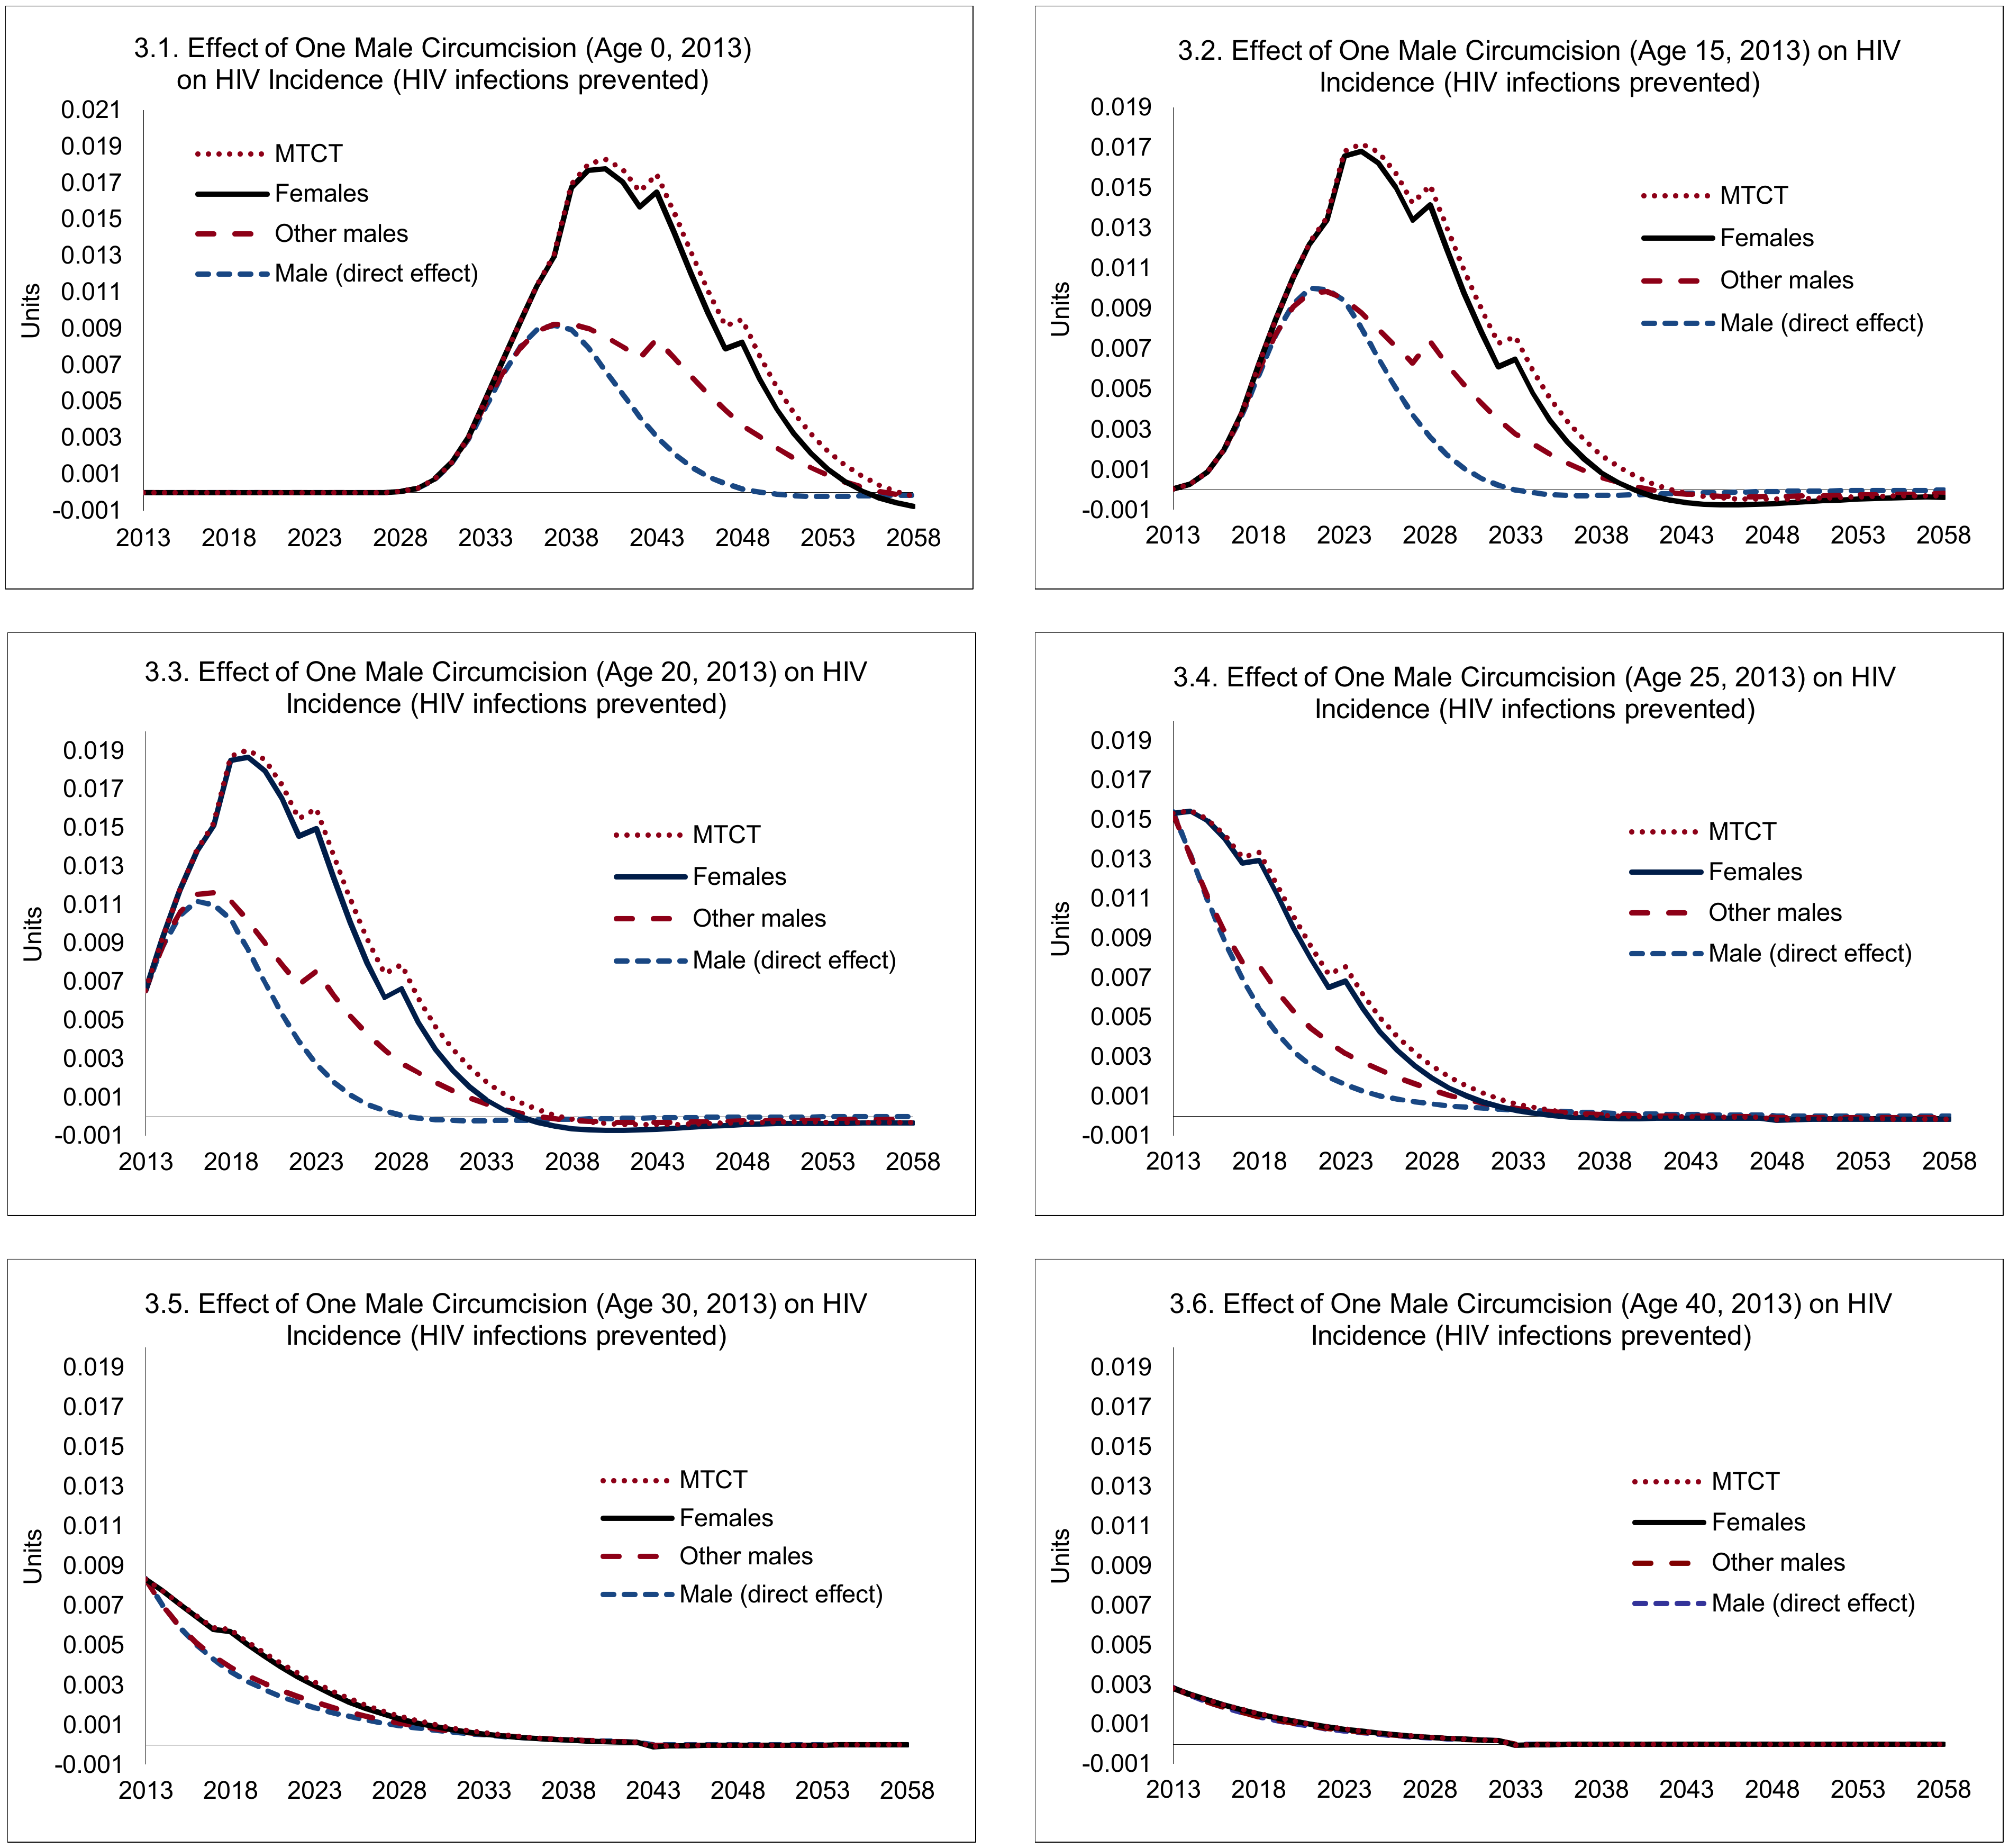 Direct and indirect effects of one male circumcision on HIV incidence.